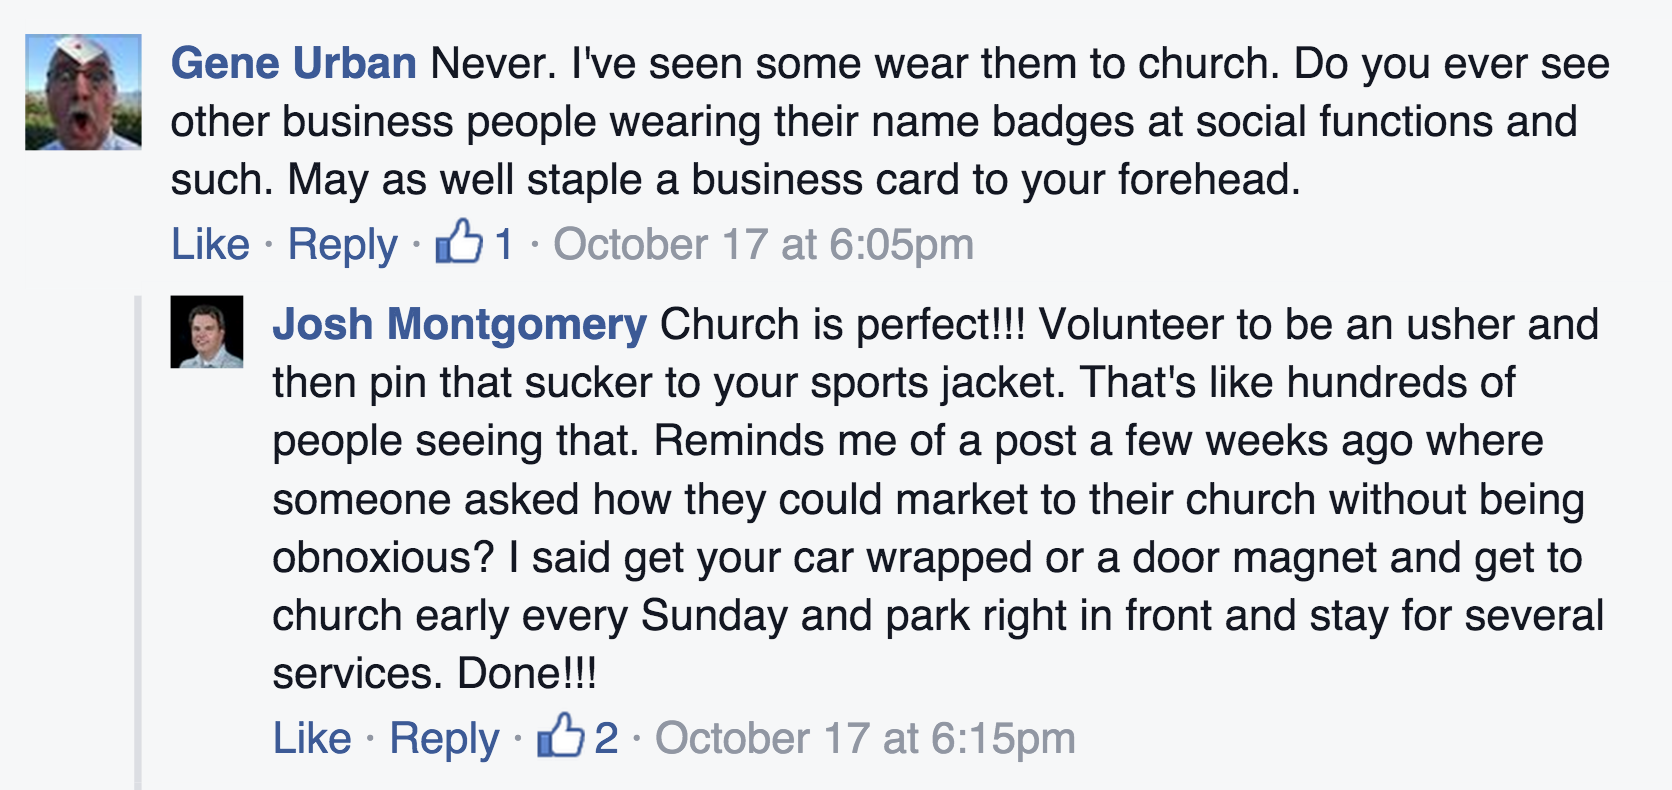 Screen shot showing comments from a recent Facebook conversation on name tags.